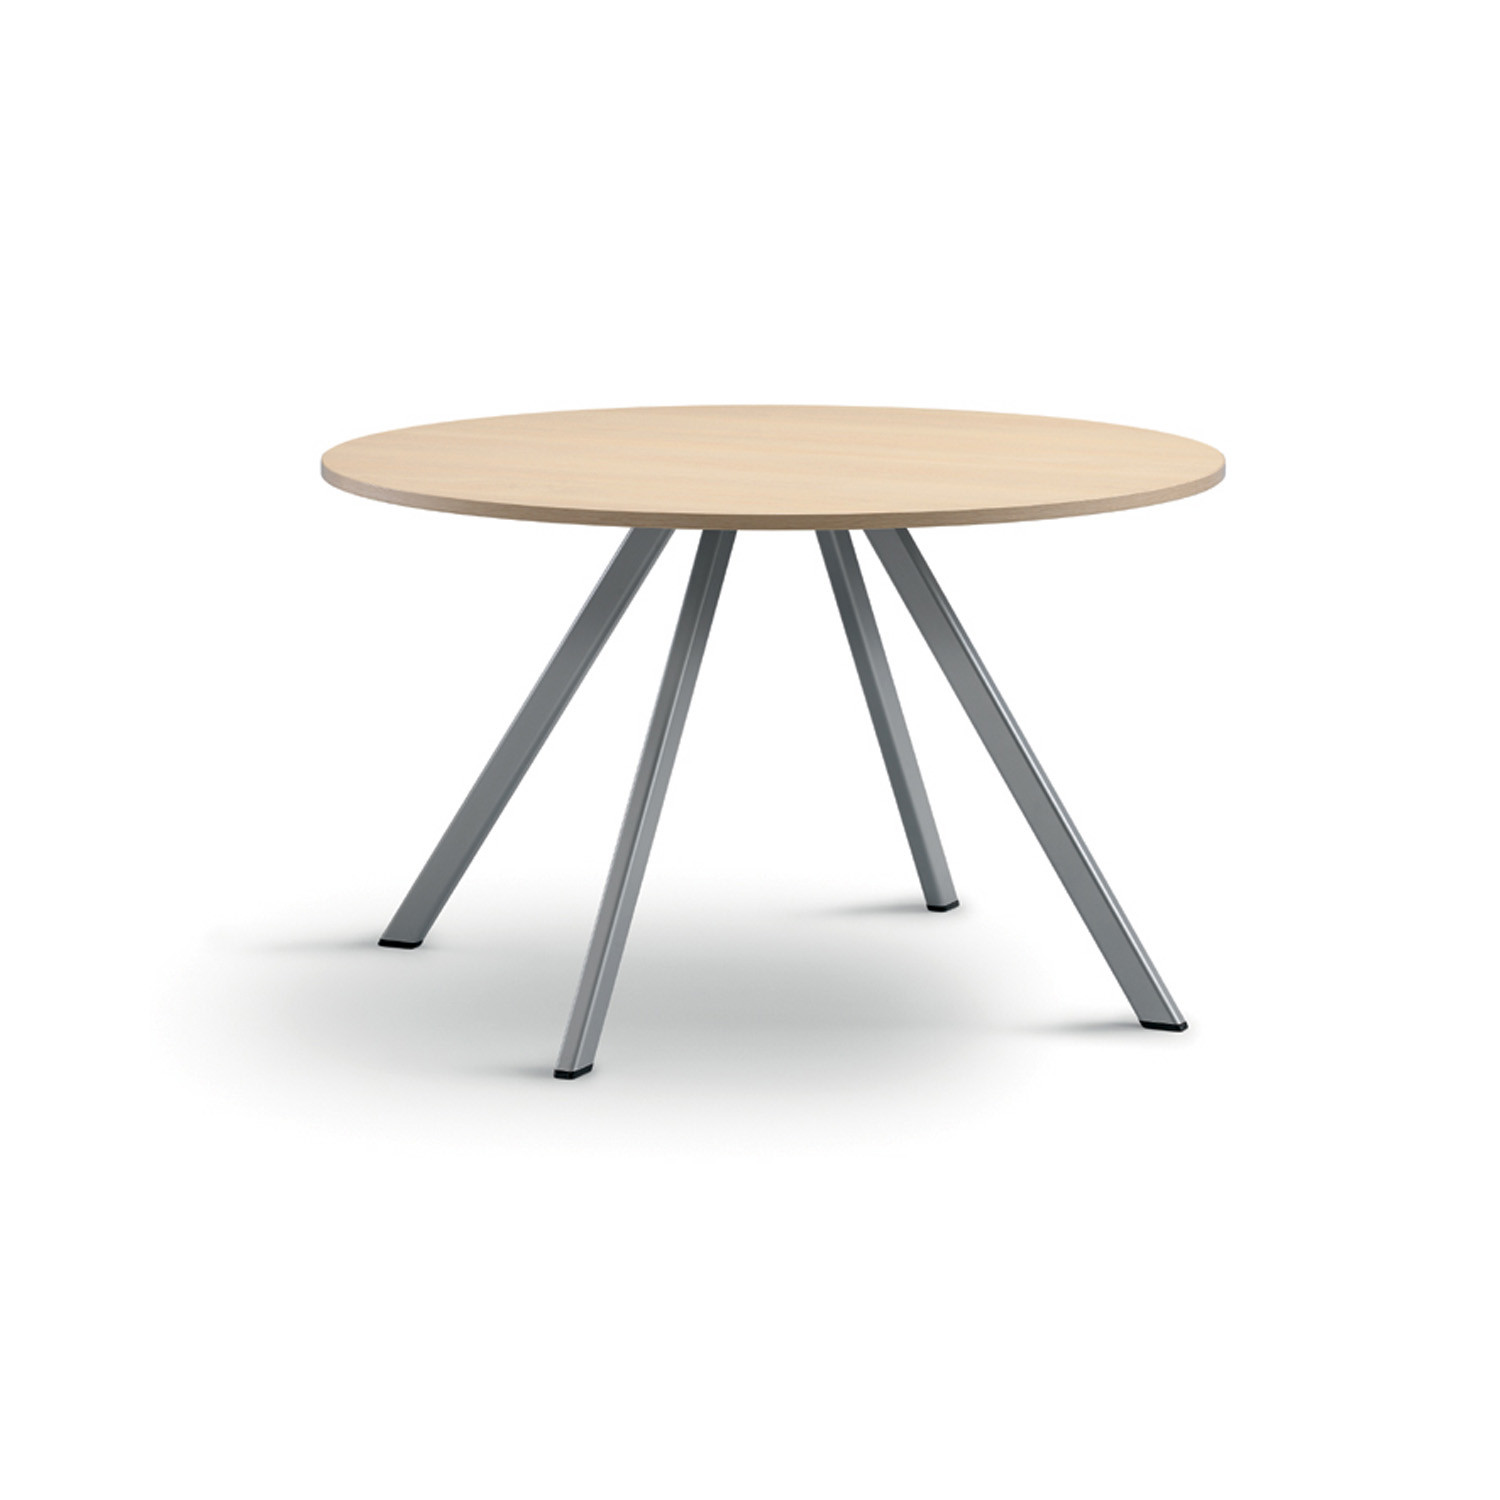 Veron 4-Legged Table Round